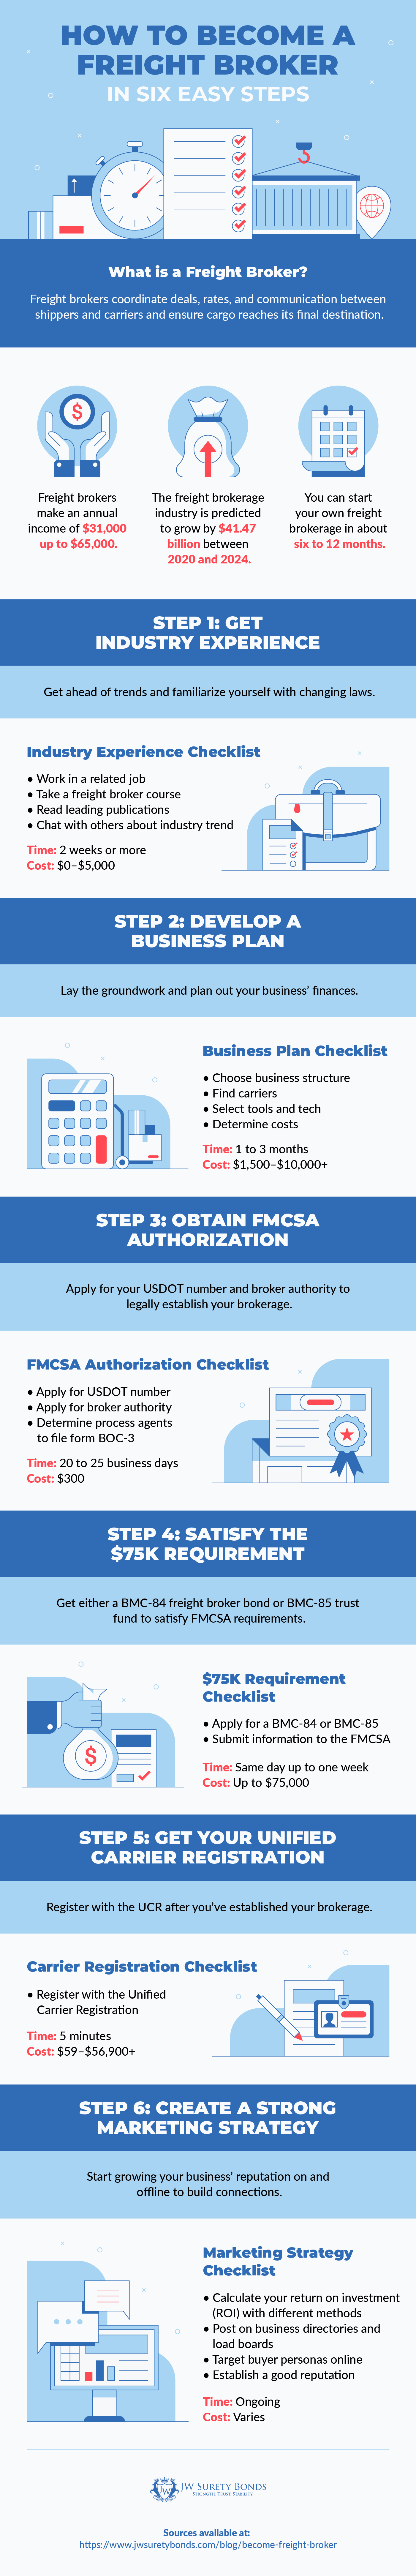 how to become a freight broker infographic